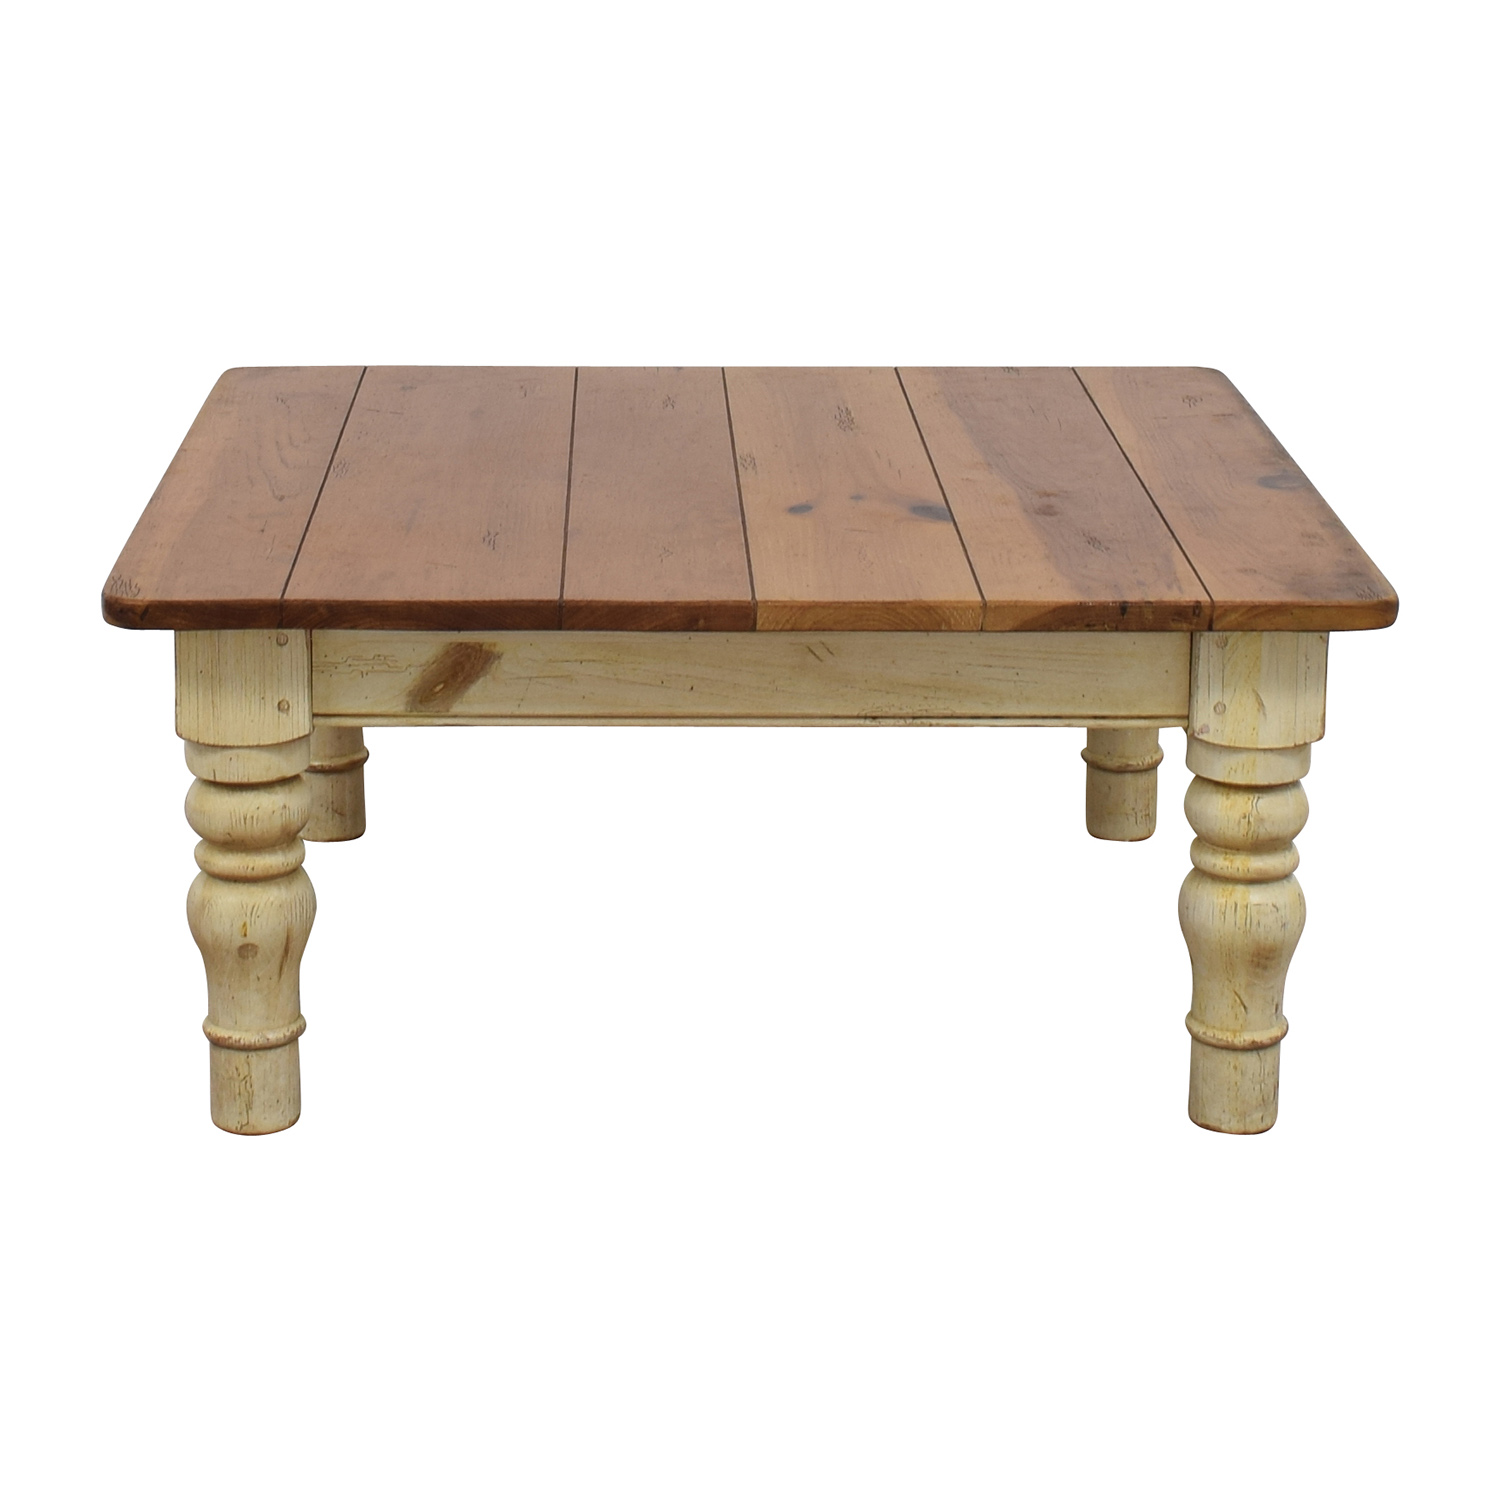 Ethan Allen Tuscan Coffee Table: Ethan Allen Coffee Tables